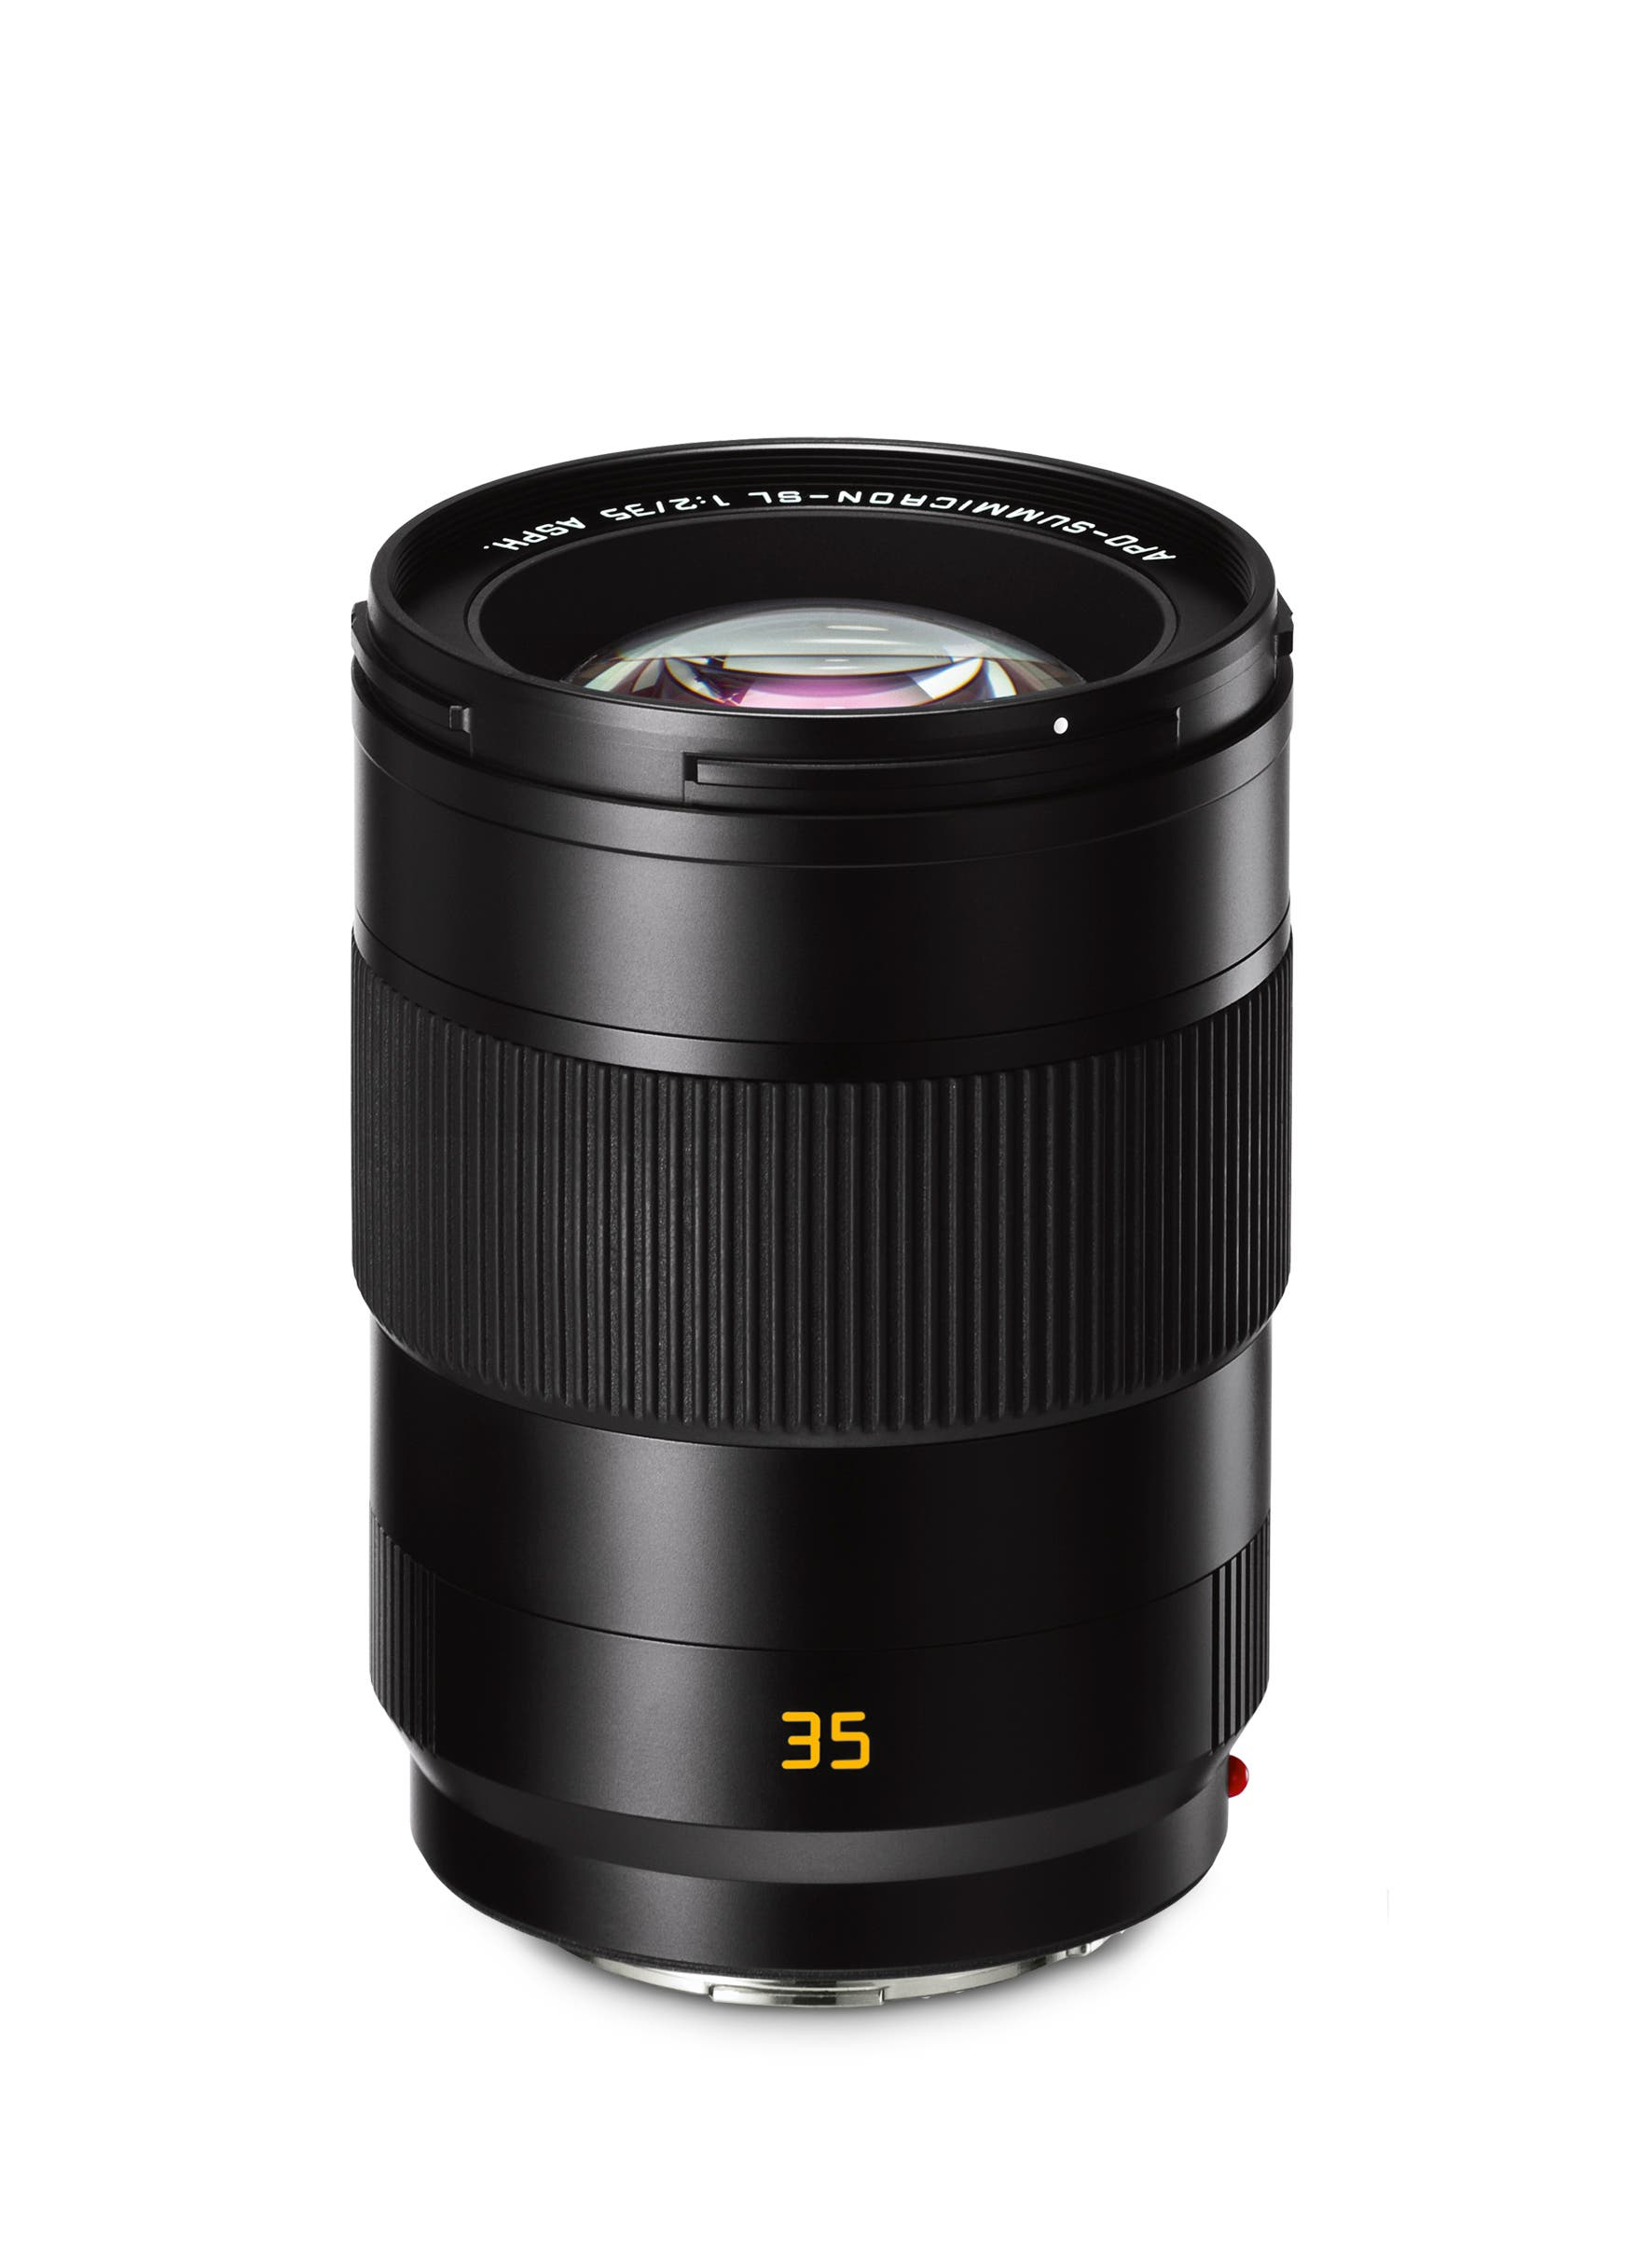 The Leica APO-Summicron-SL 35mm f2 ASPH Sweetens the L Mount